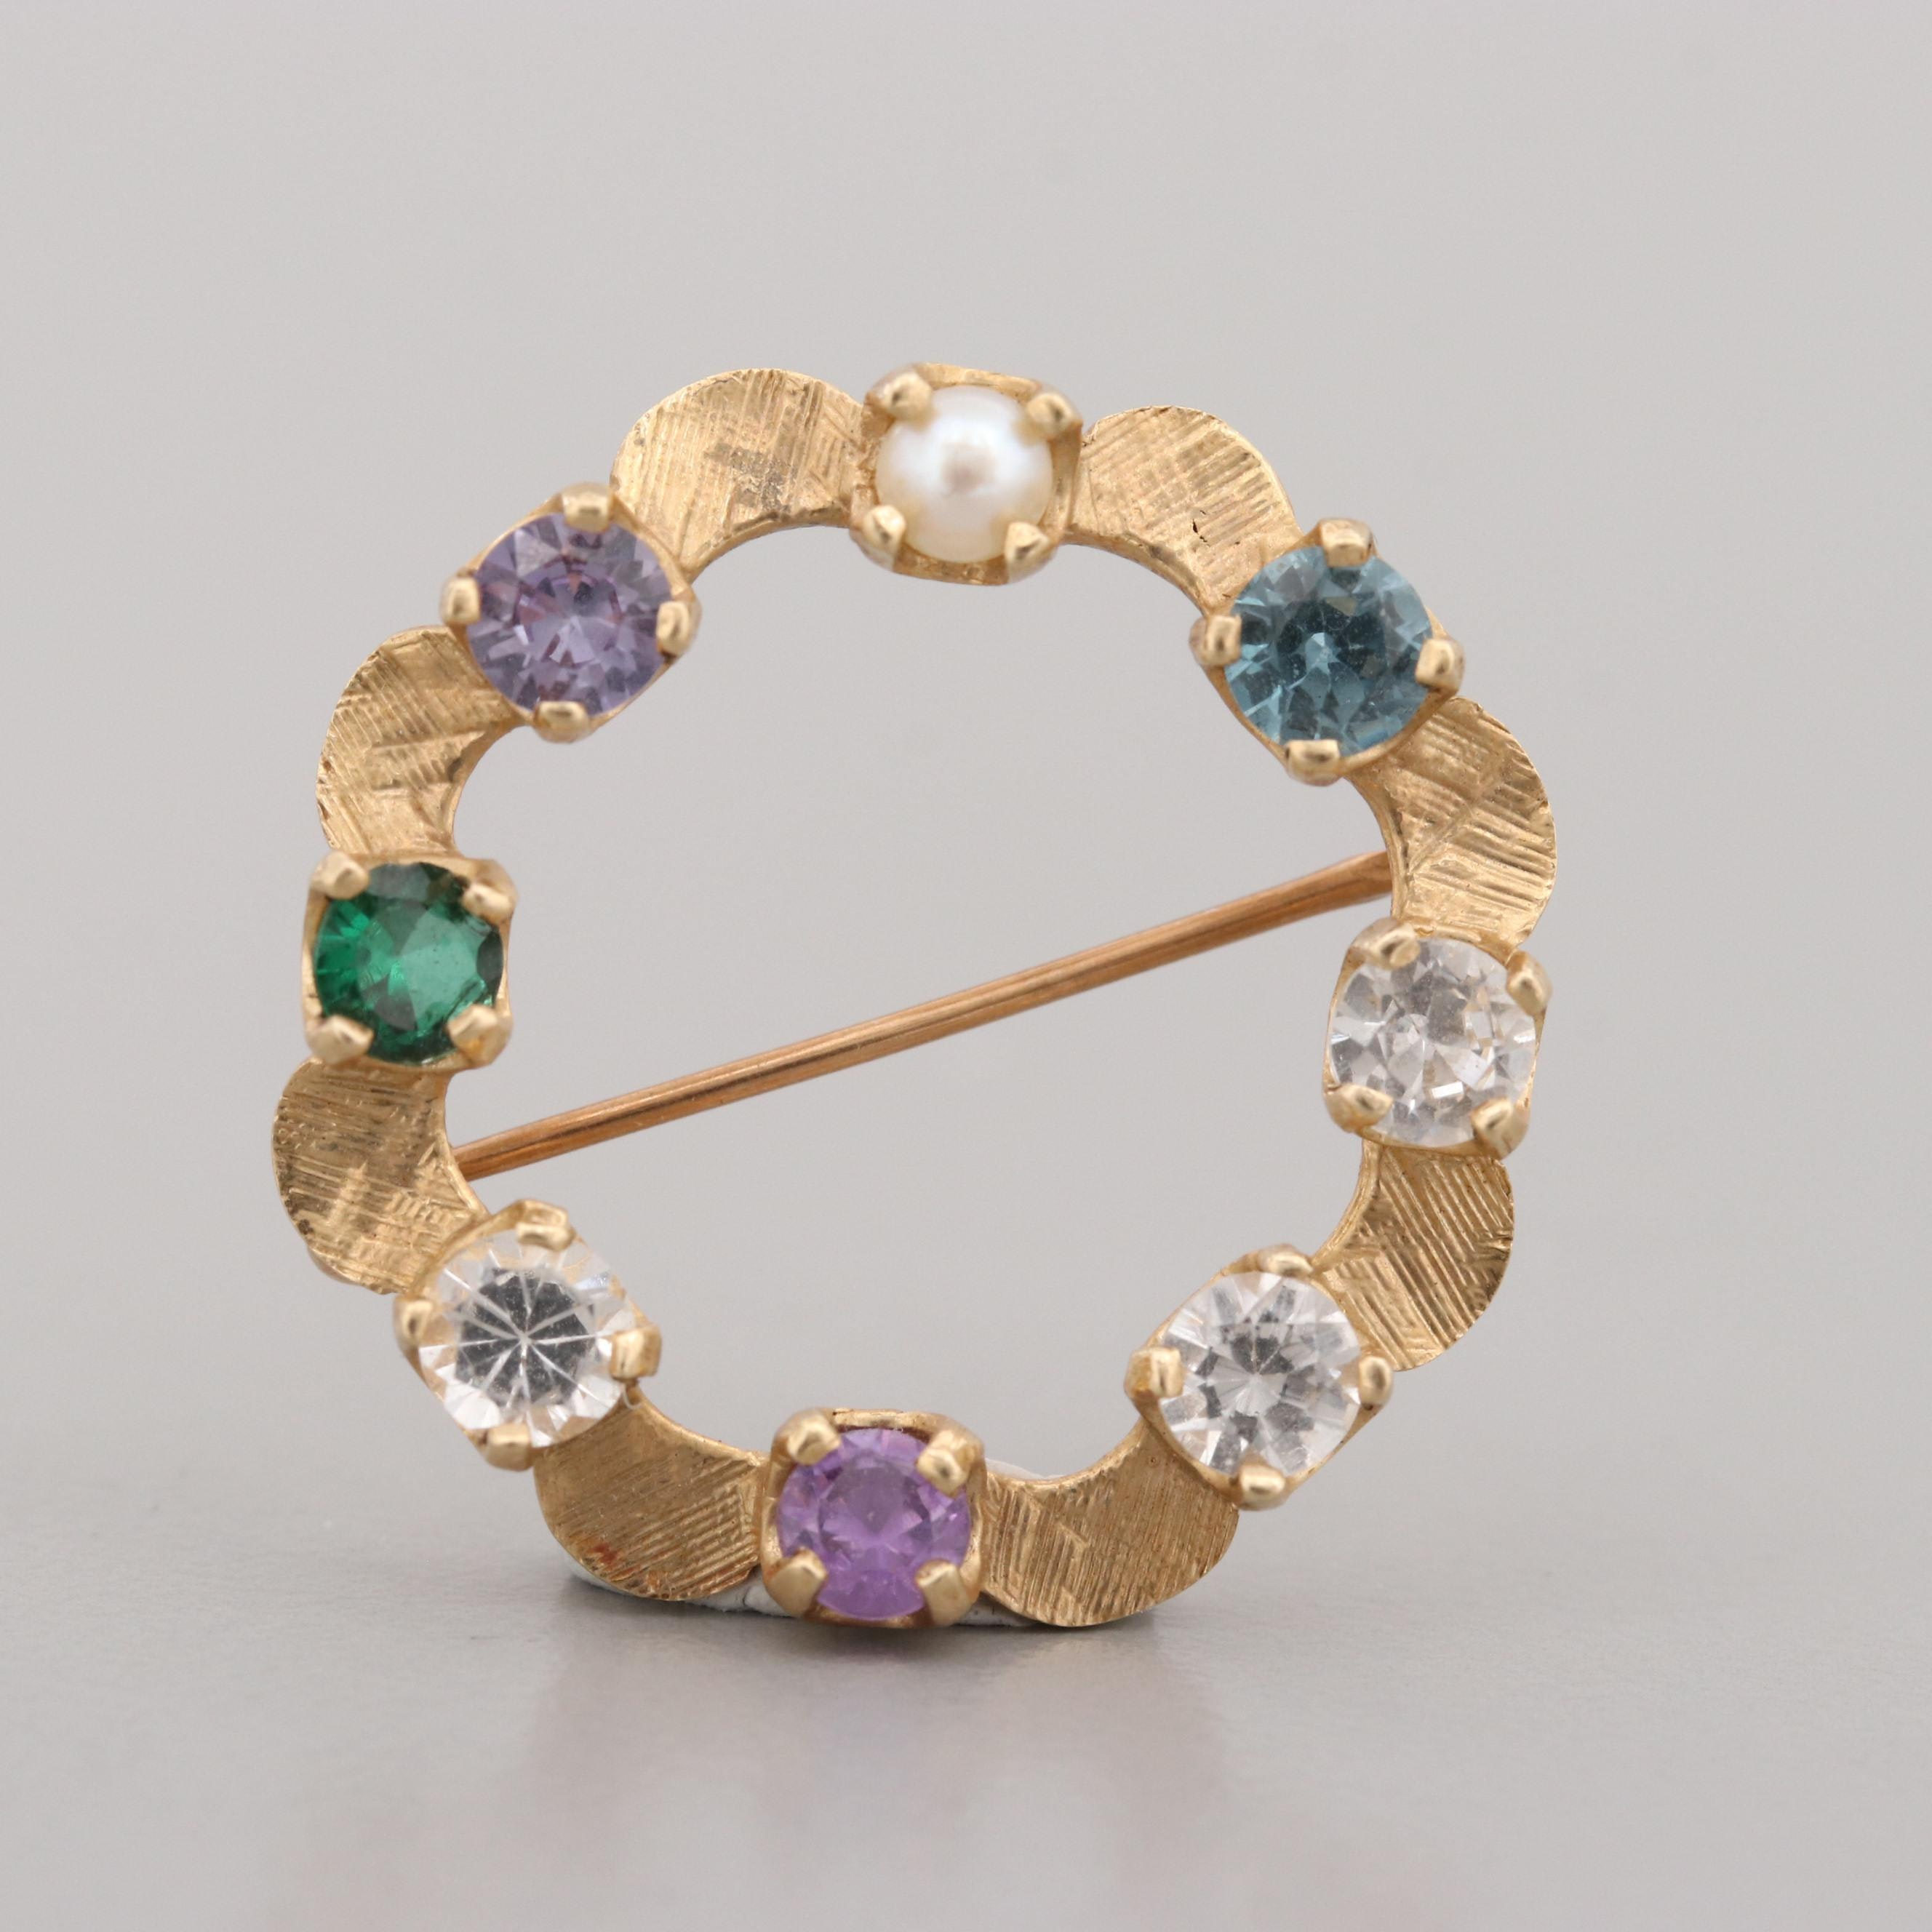 14K Yellow Gold Cultured Pearl and Spinel Brooch